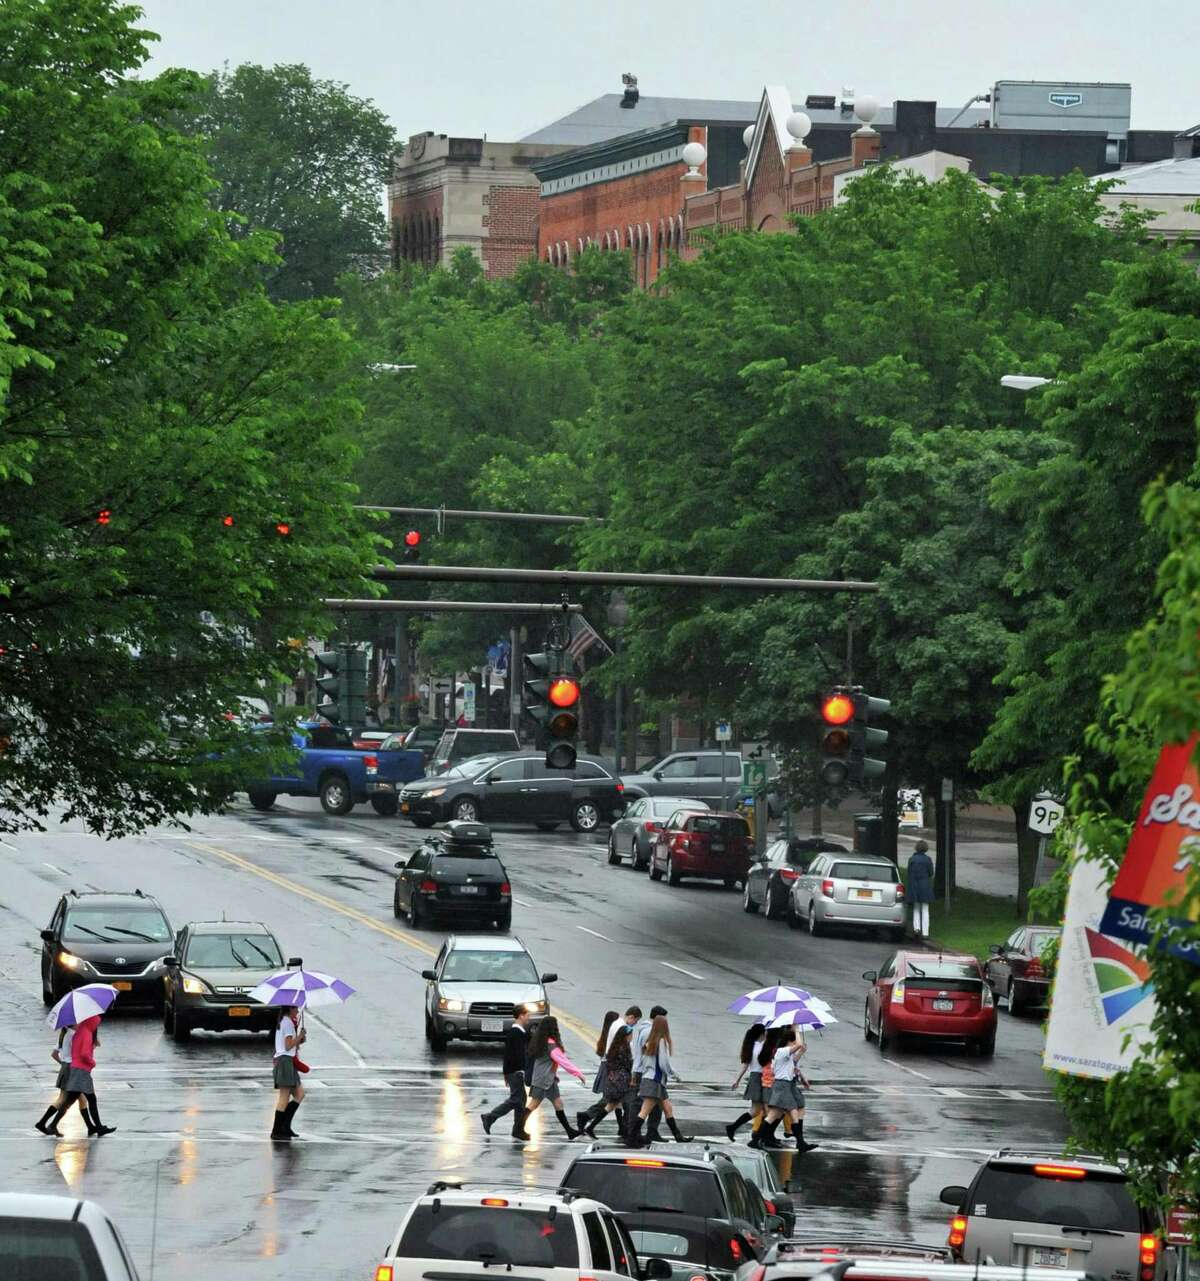 Pedestrians cross Broadway Thursday morning June 12, 2014, in Saratoga Springs, NY. (John Carl D'Annibale / Times Union)